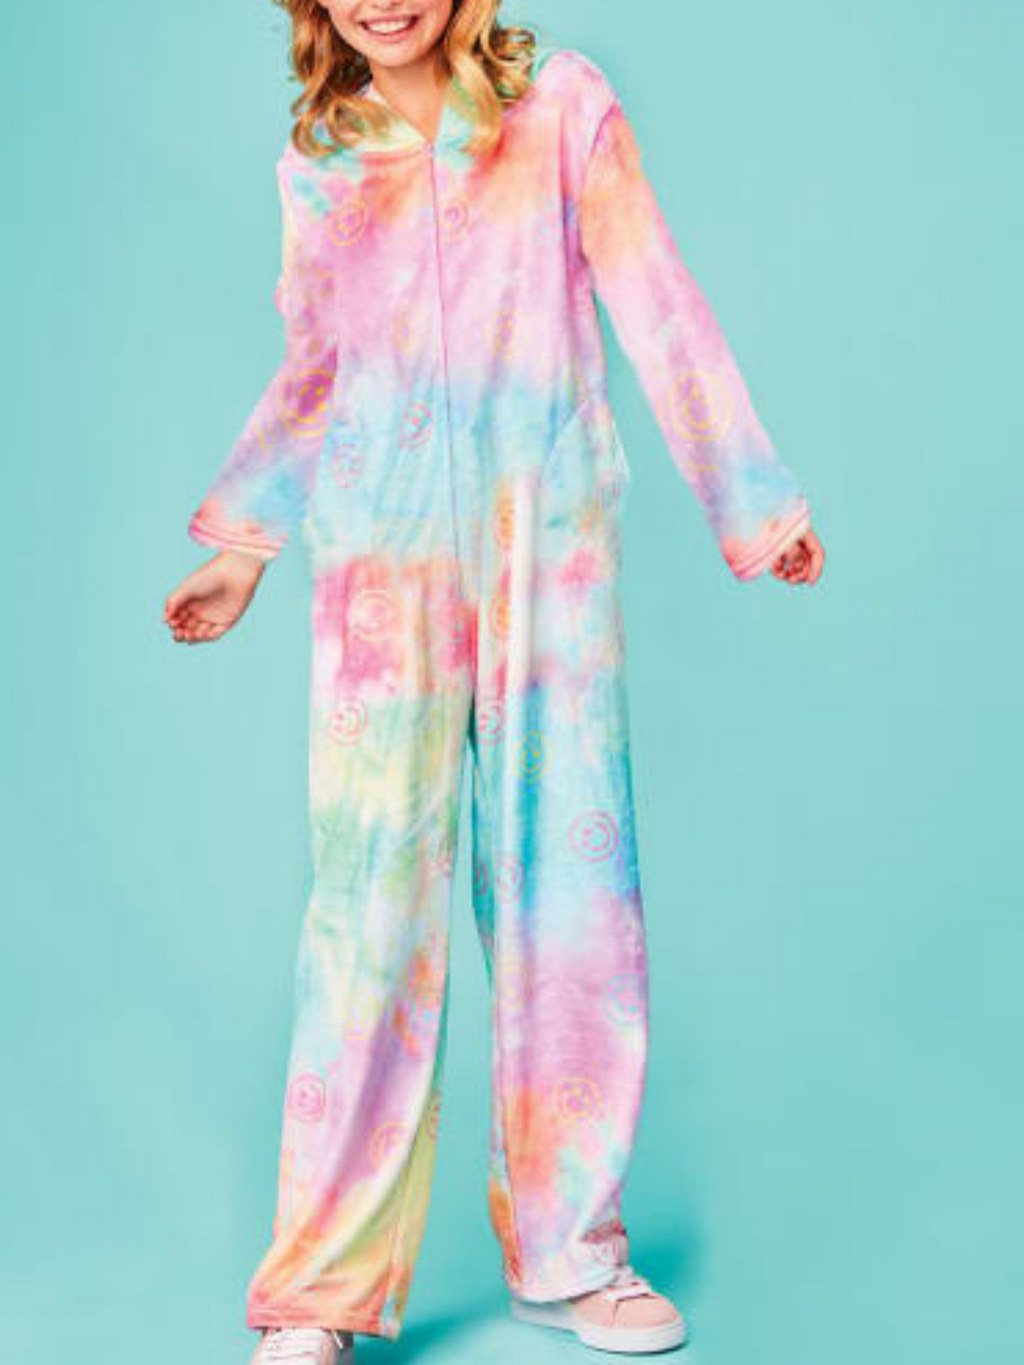 Cotton Candy Smiley Onesie